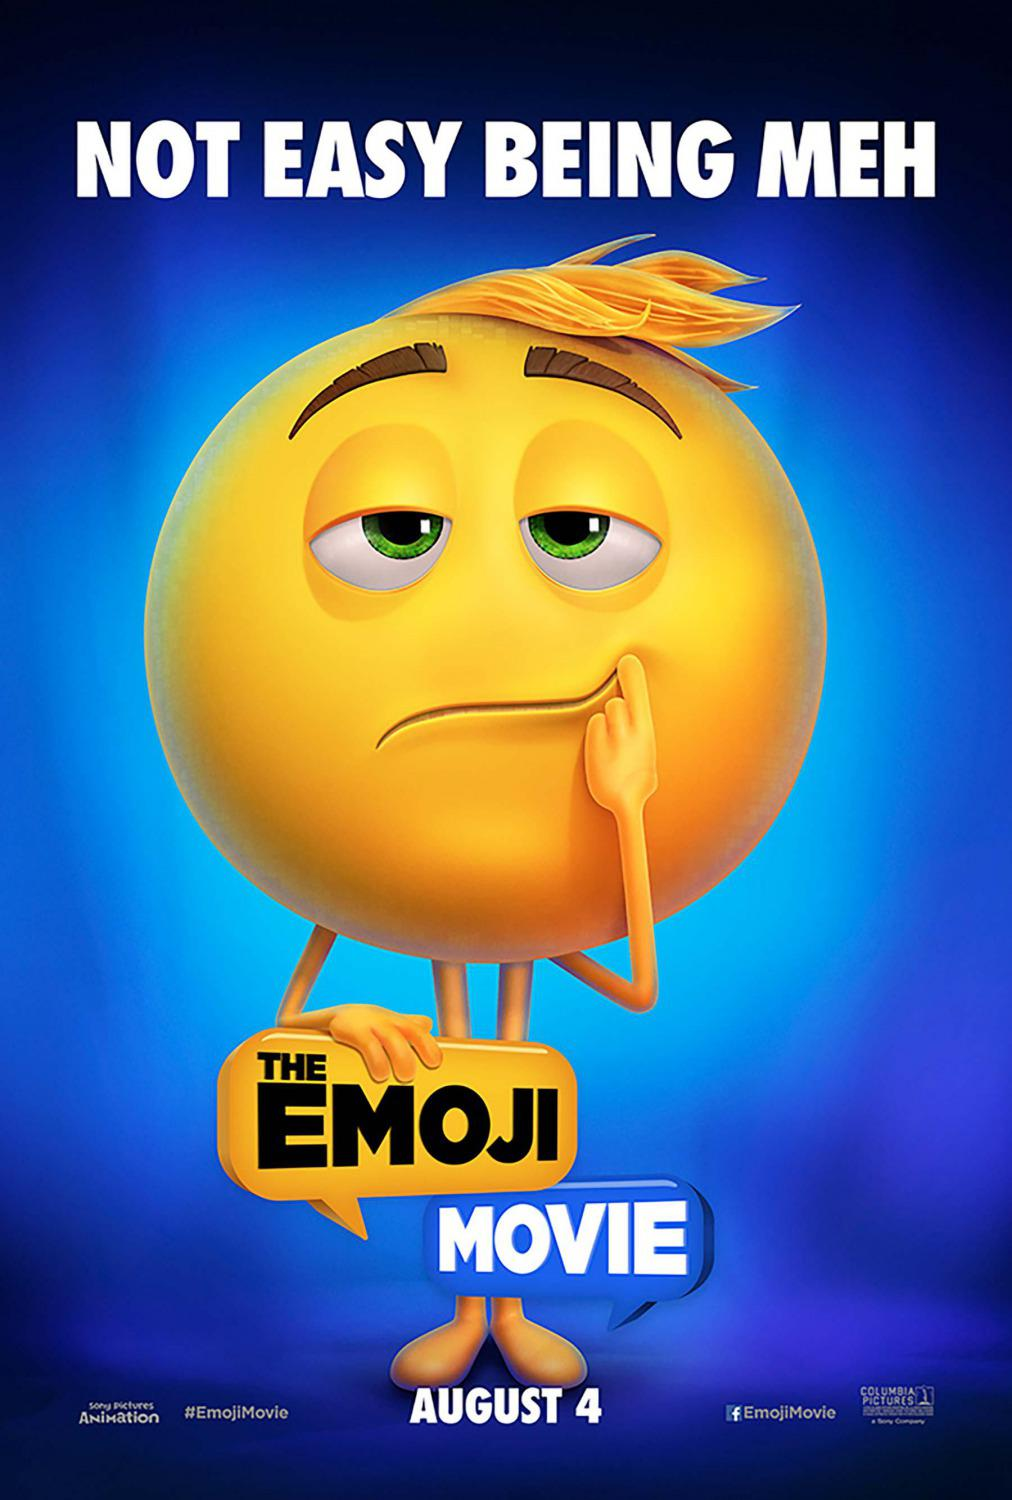 Emoji - Emoticon animated movie - Not Easy Being Meh - Mmm - poster